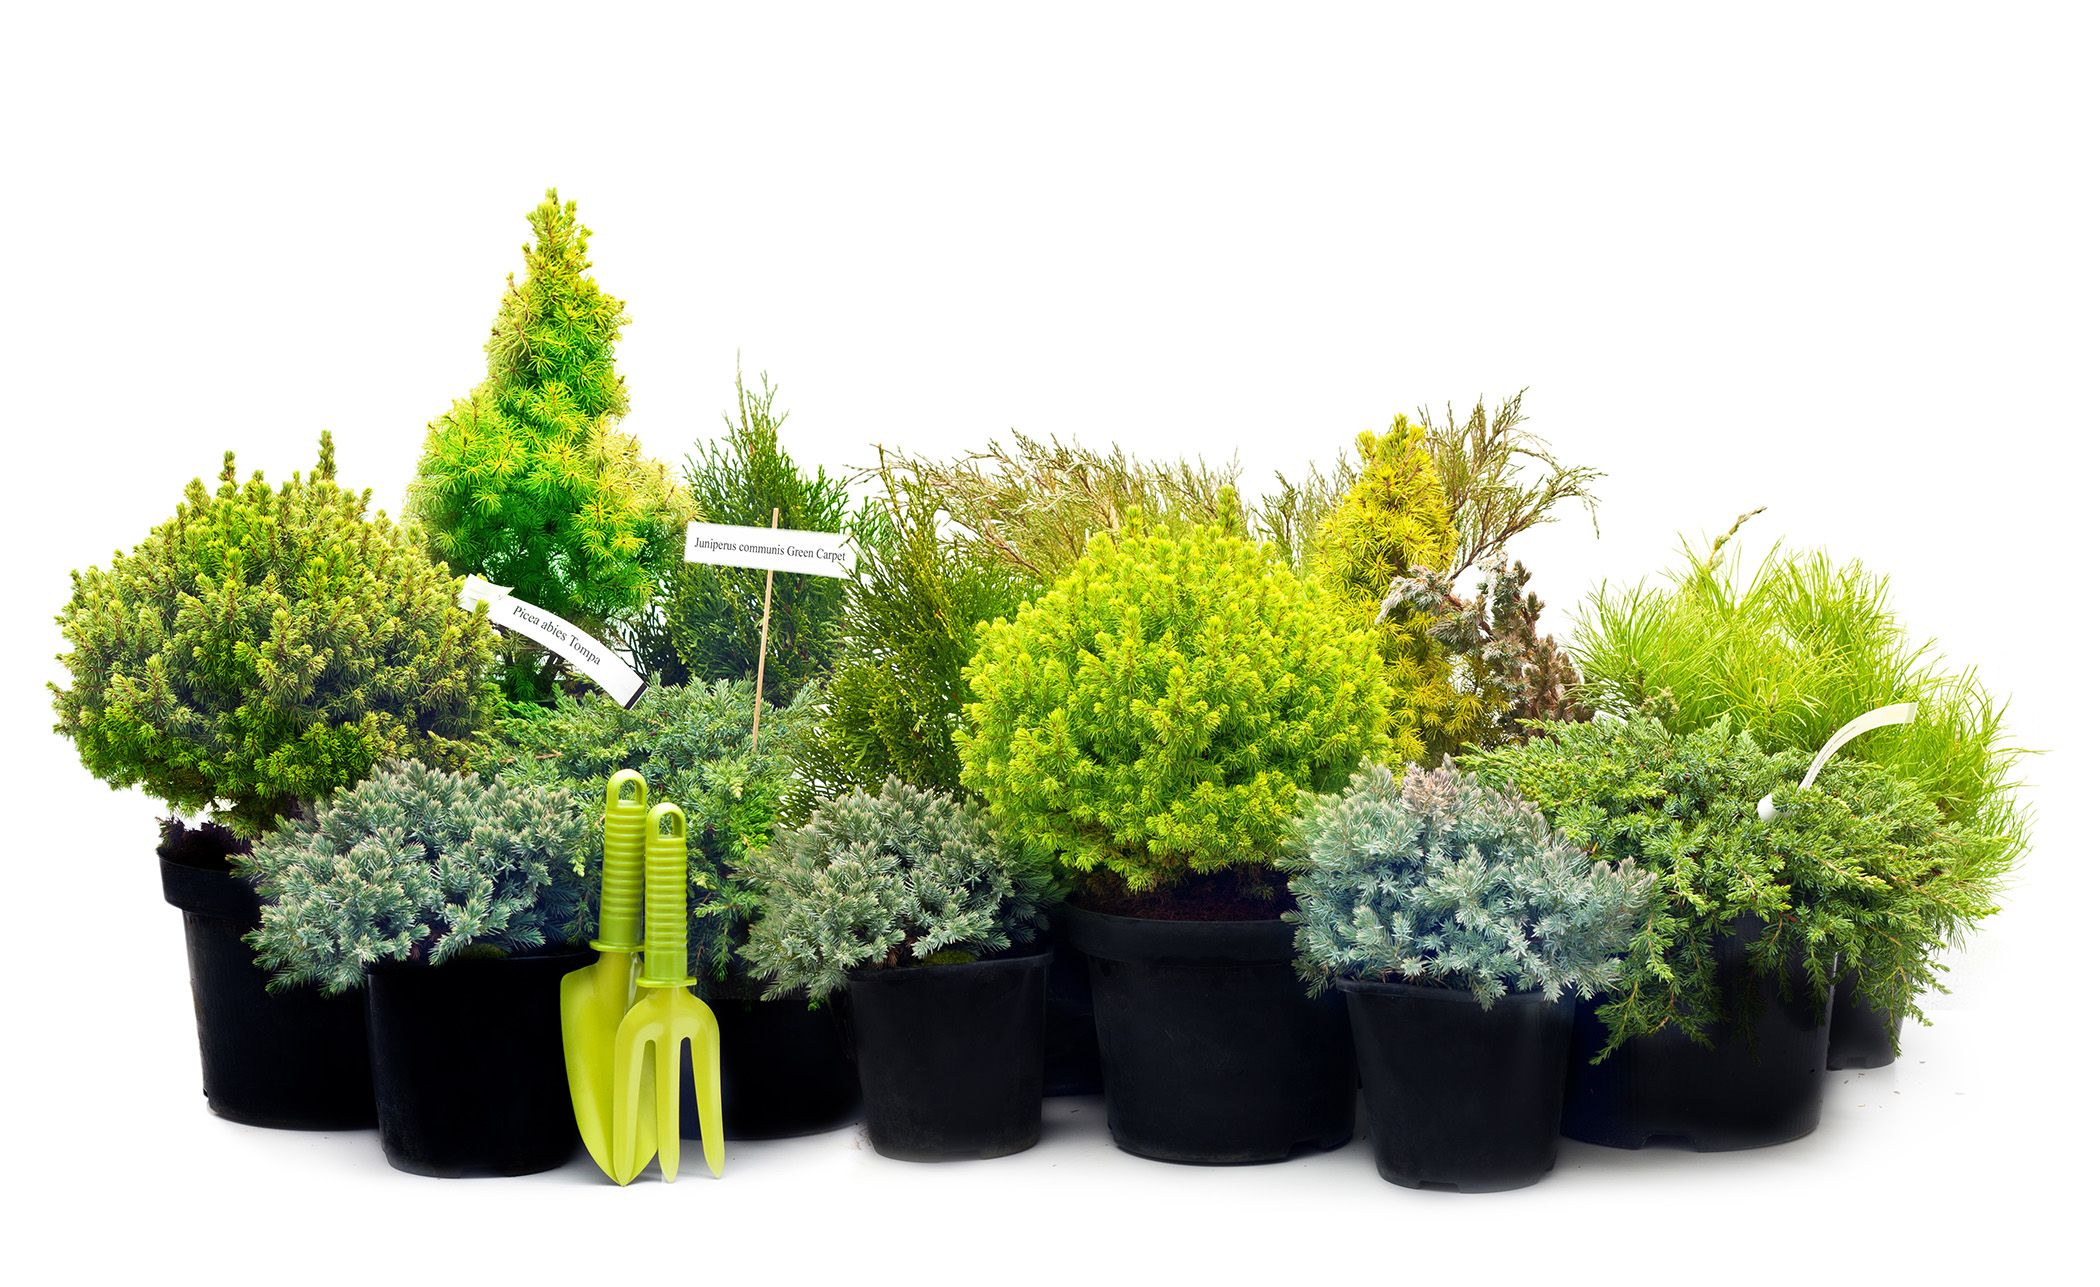 Dwarf conifers conifer trees containers small for Small decorative evergreen trees